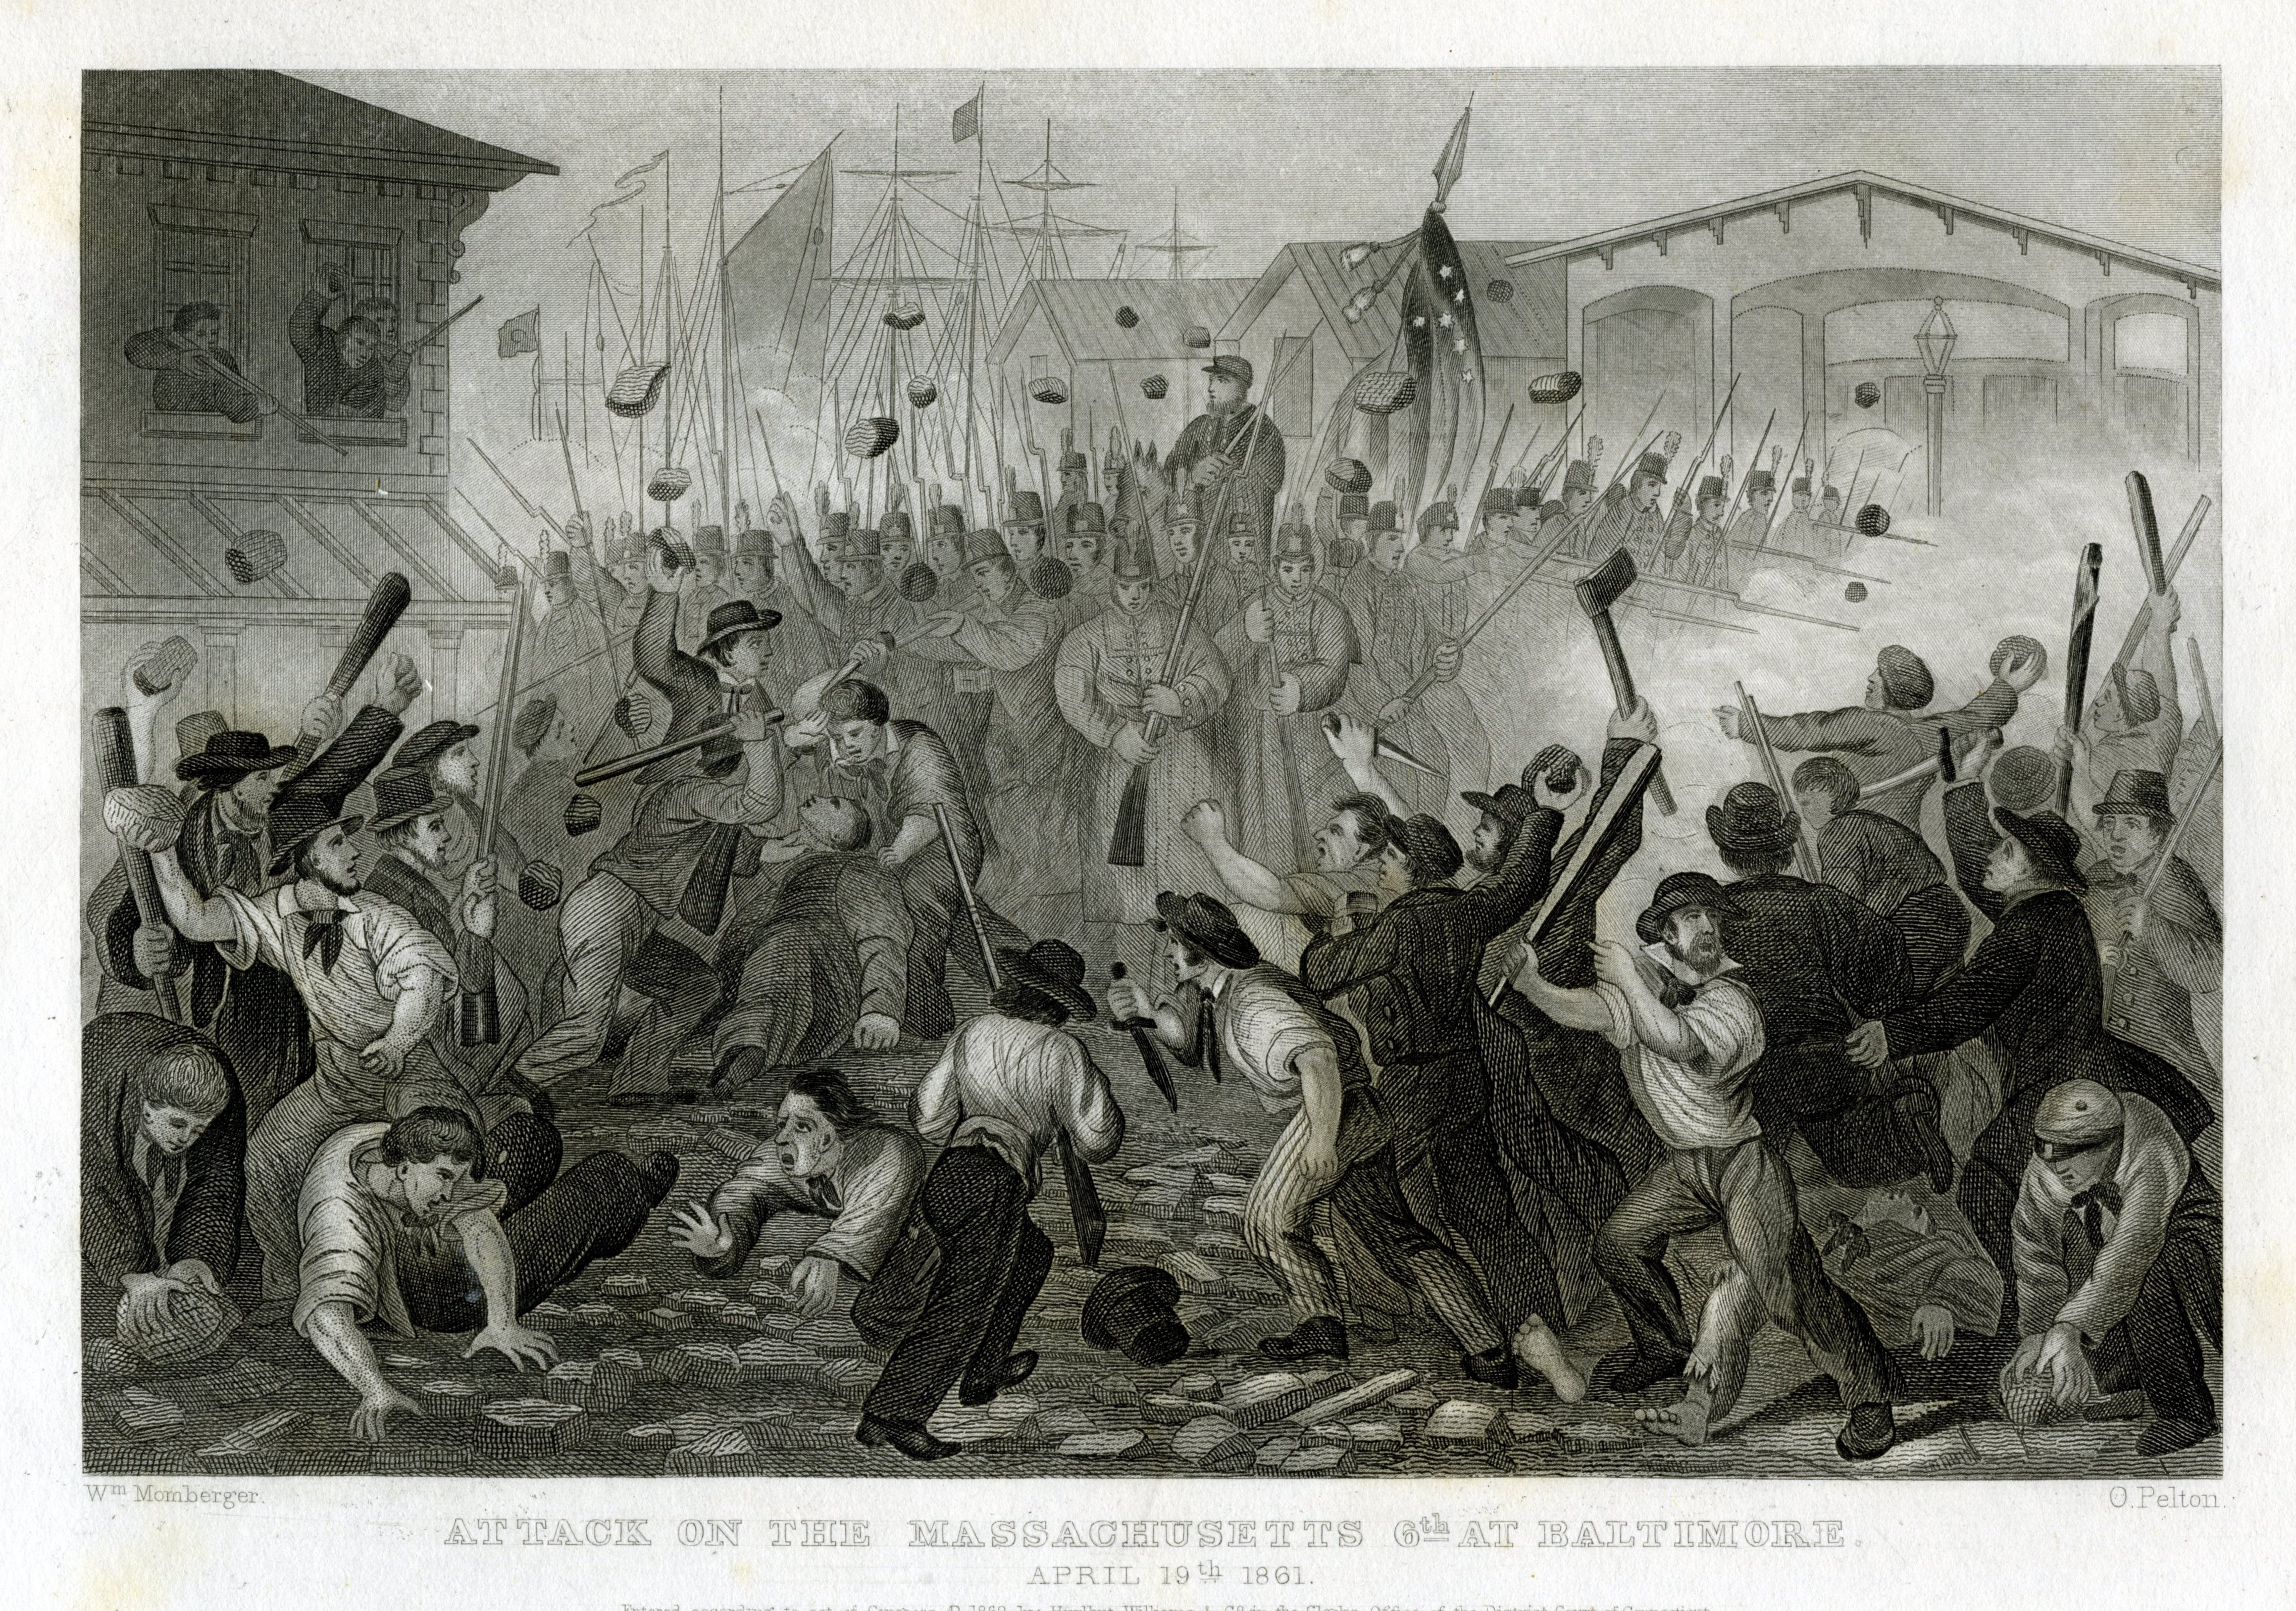 6th Massachusetts and the BALTIMORE RIOT | Historical Digression